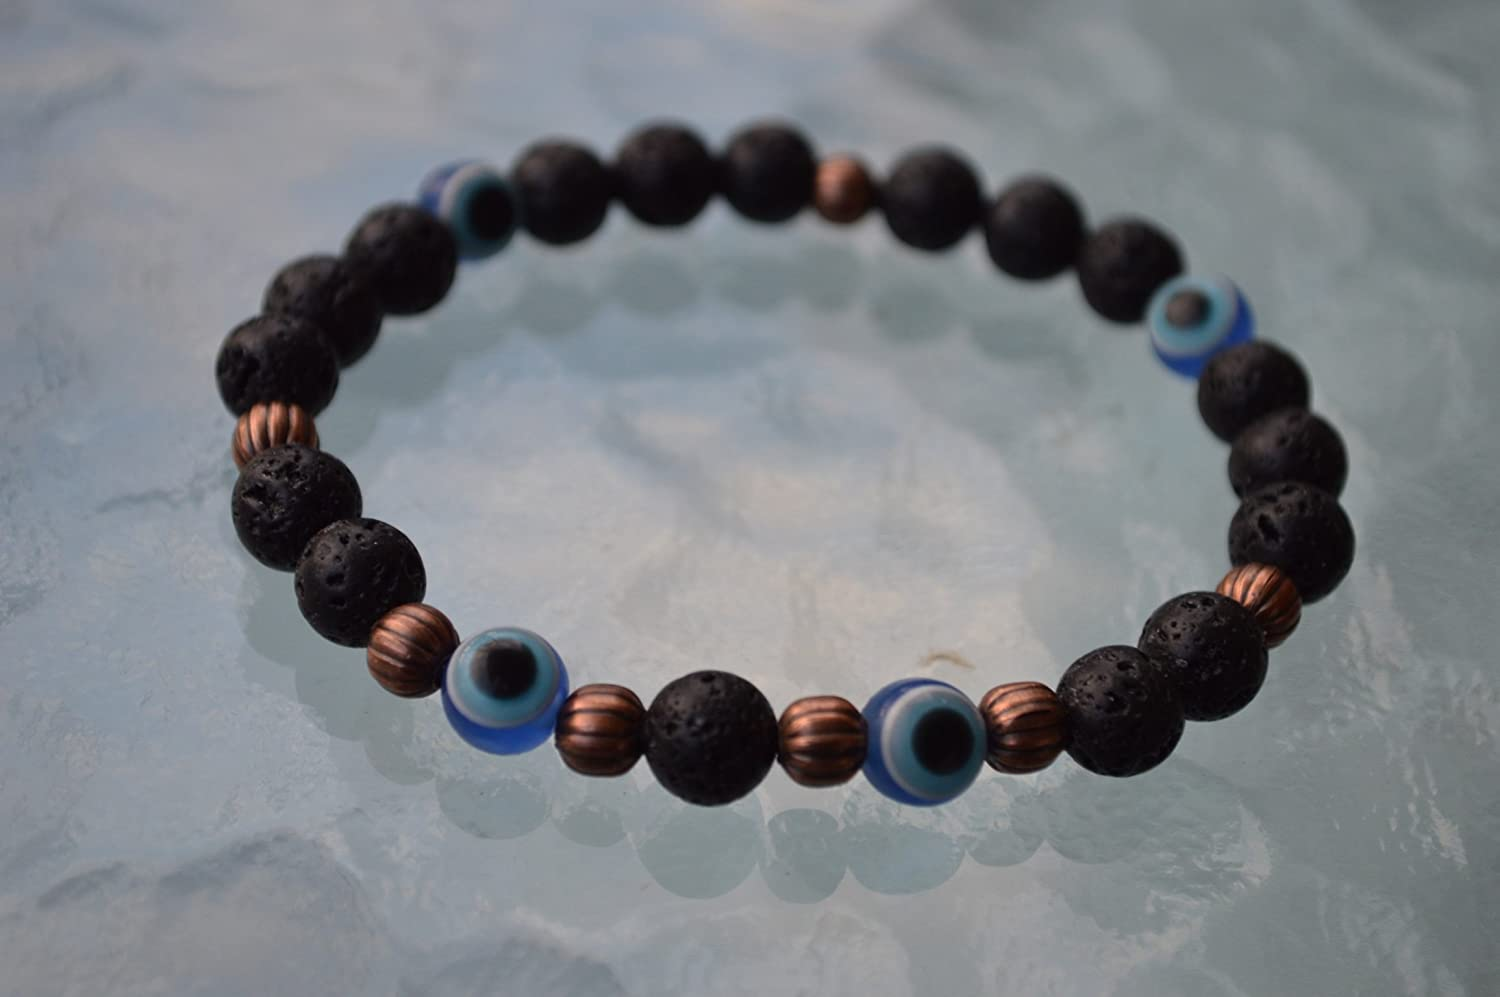 Black Basalt Lava Stone rock & Evil eye men's wrist Mala beads healing bracelet- For energy libido Will power Vitality Desire Social Identity - USA Seller